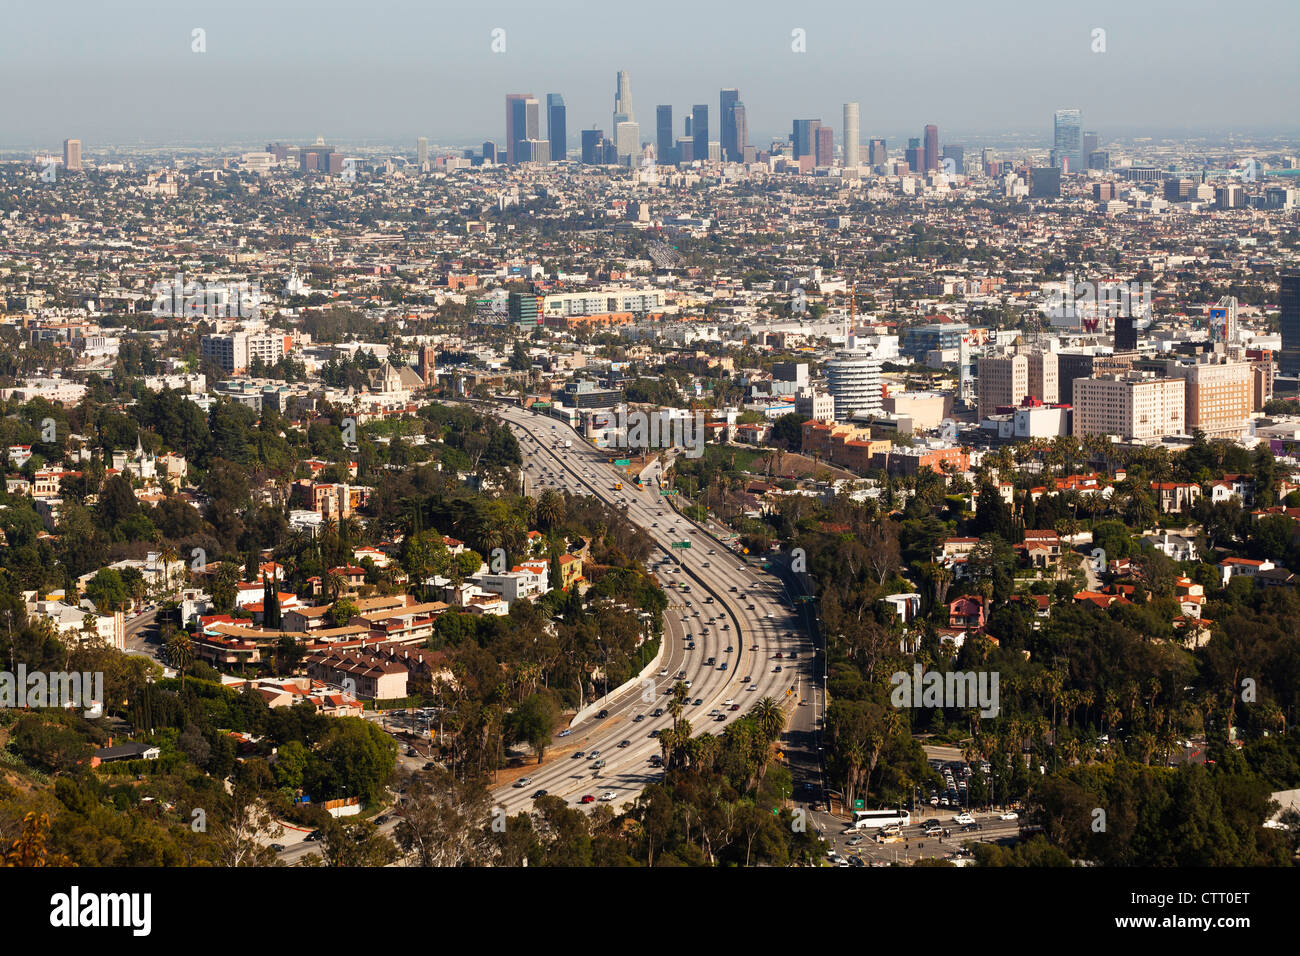 Hollywood Freeway and downtown LA - Stock Image